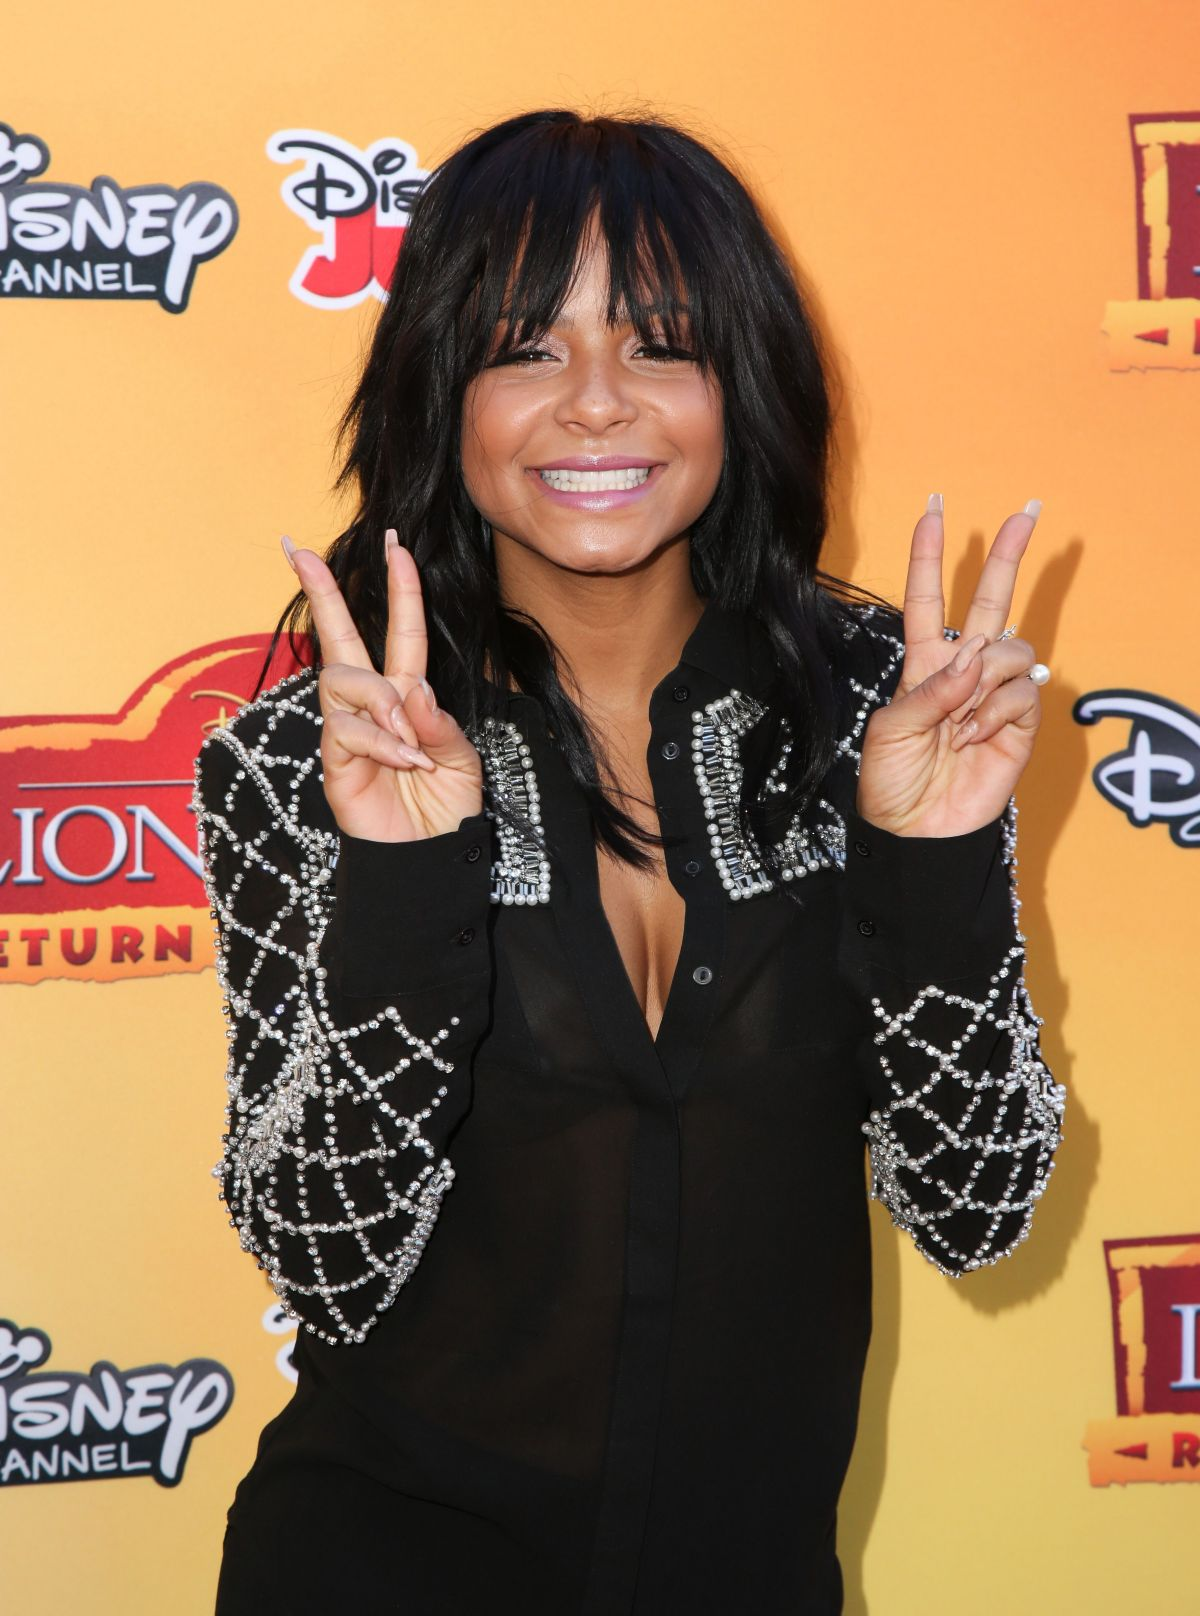 CHRISTINA MILIAN at The Lion Guard: Return of the Roar Premiere in Burbank 11/14/2015